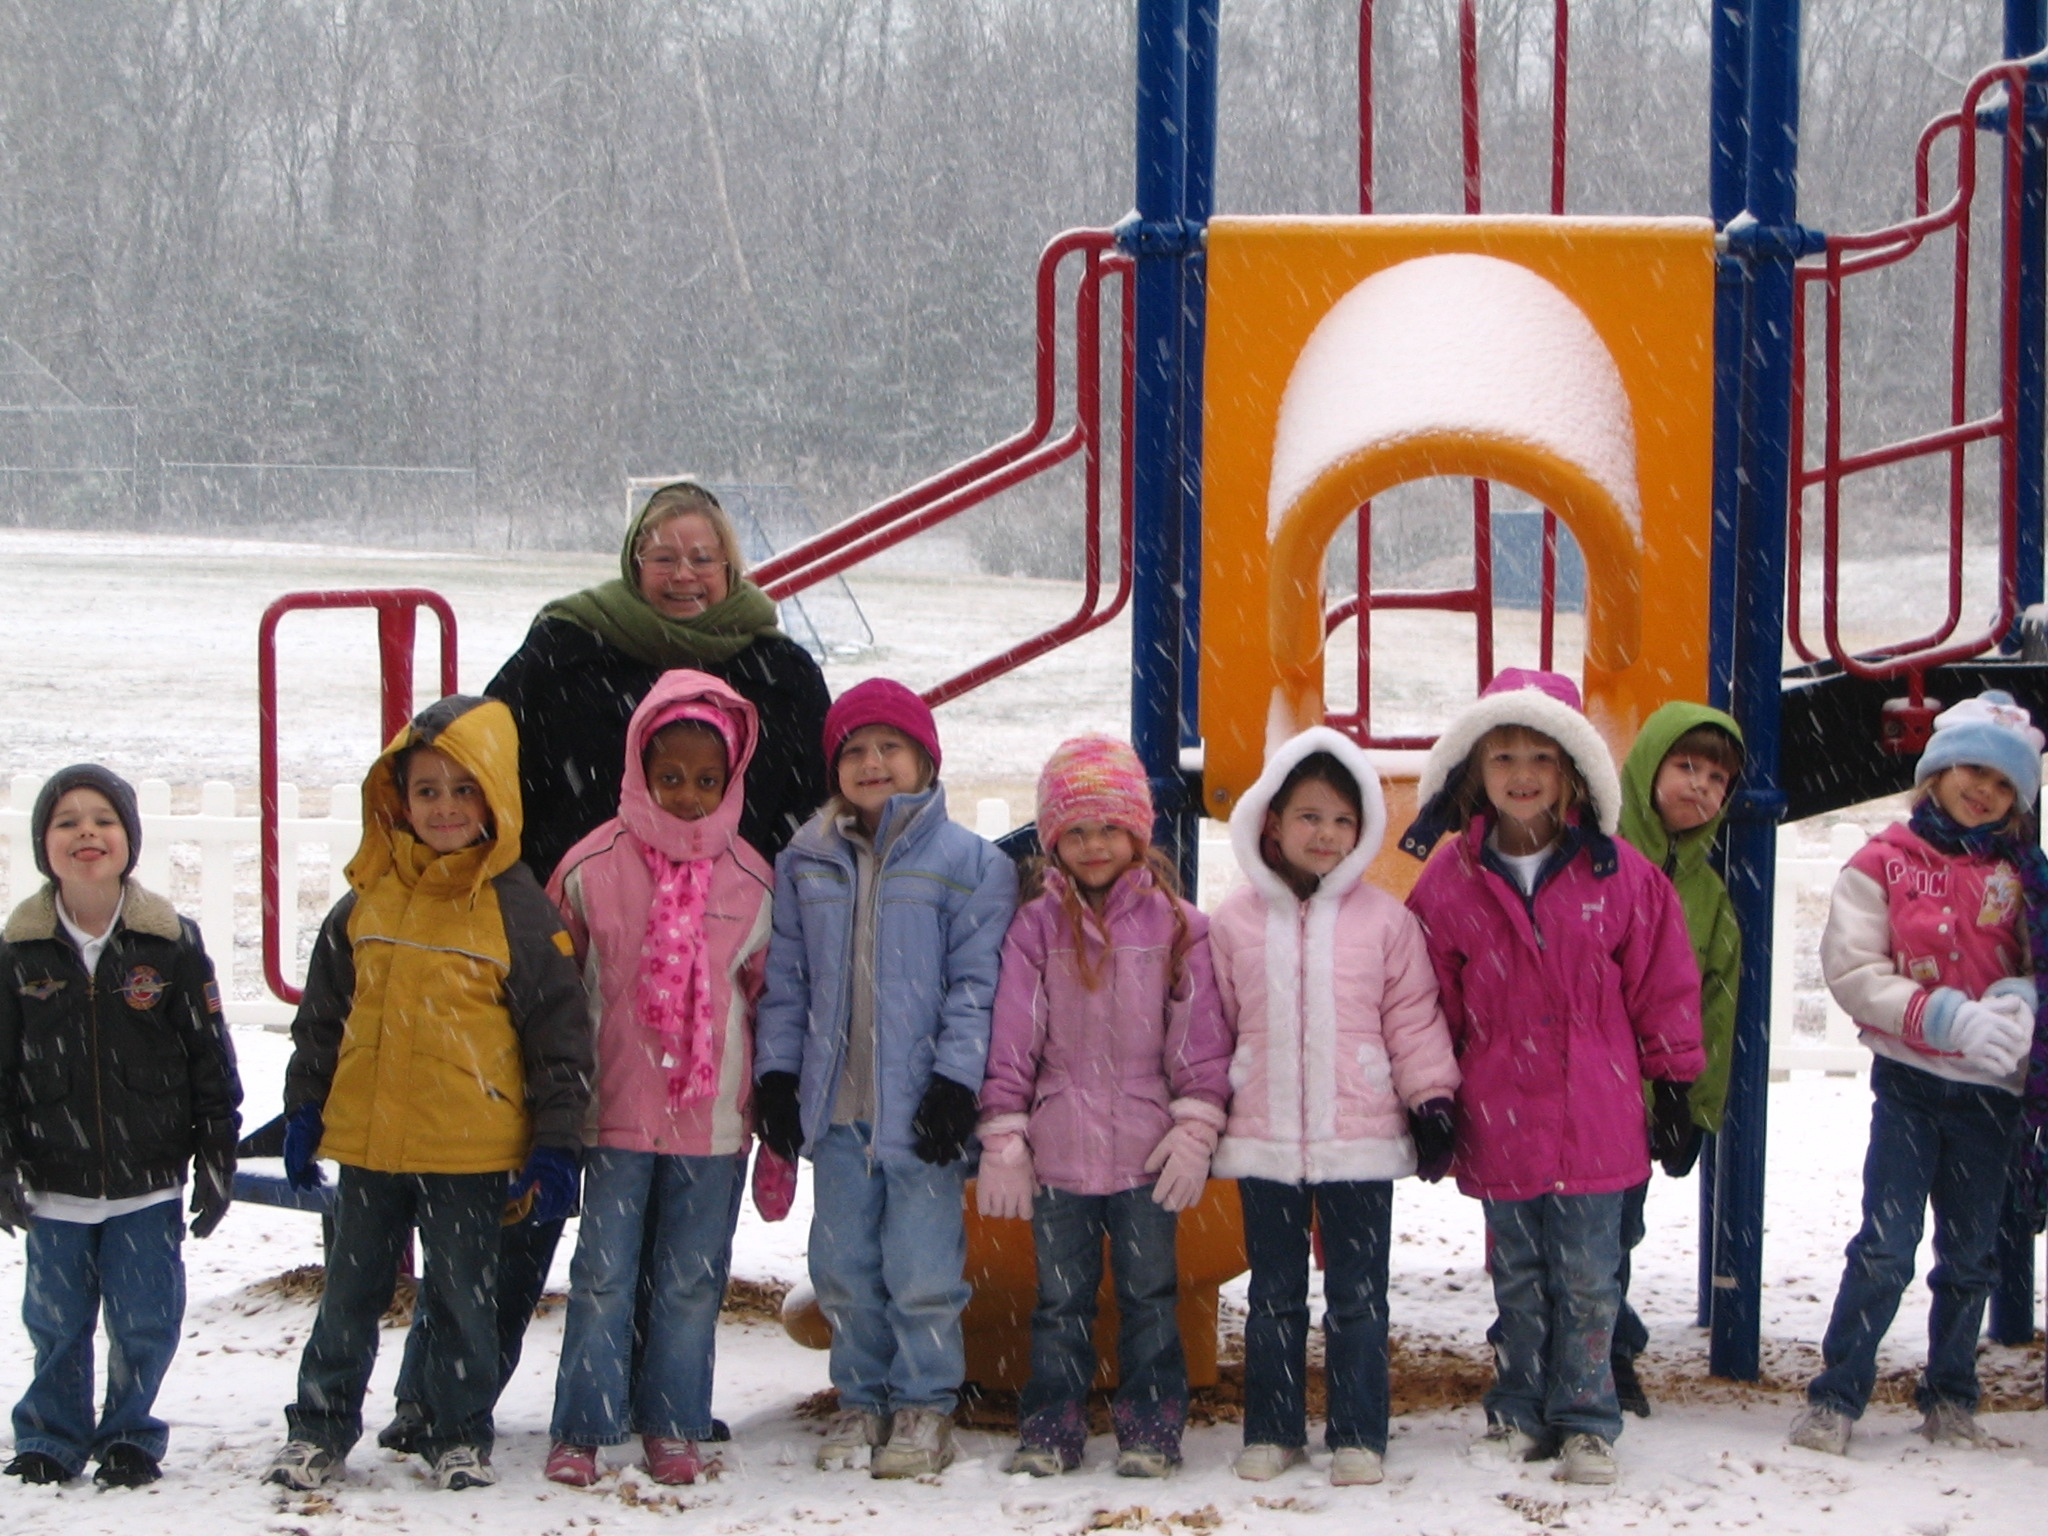 Young children and teacher posing for a picture in front of a play structure while it is snowing